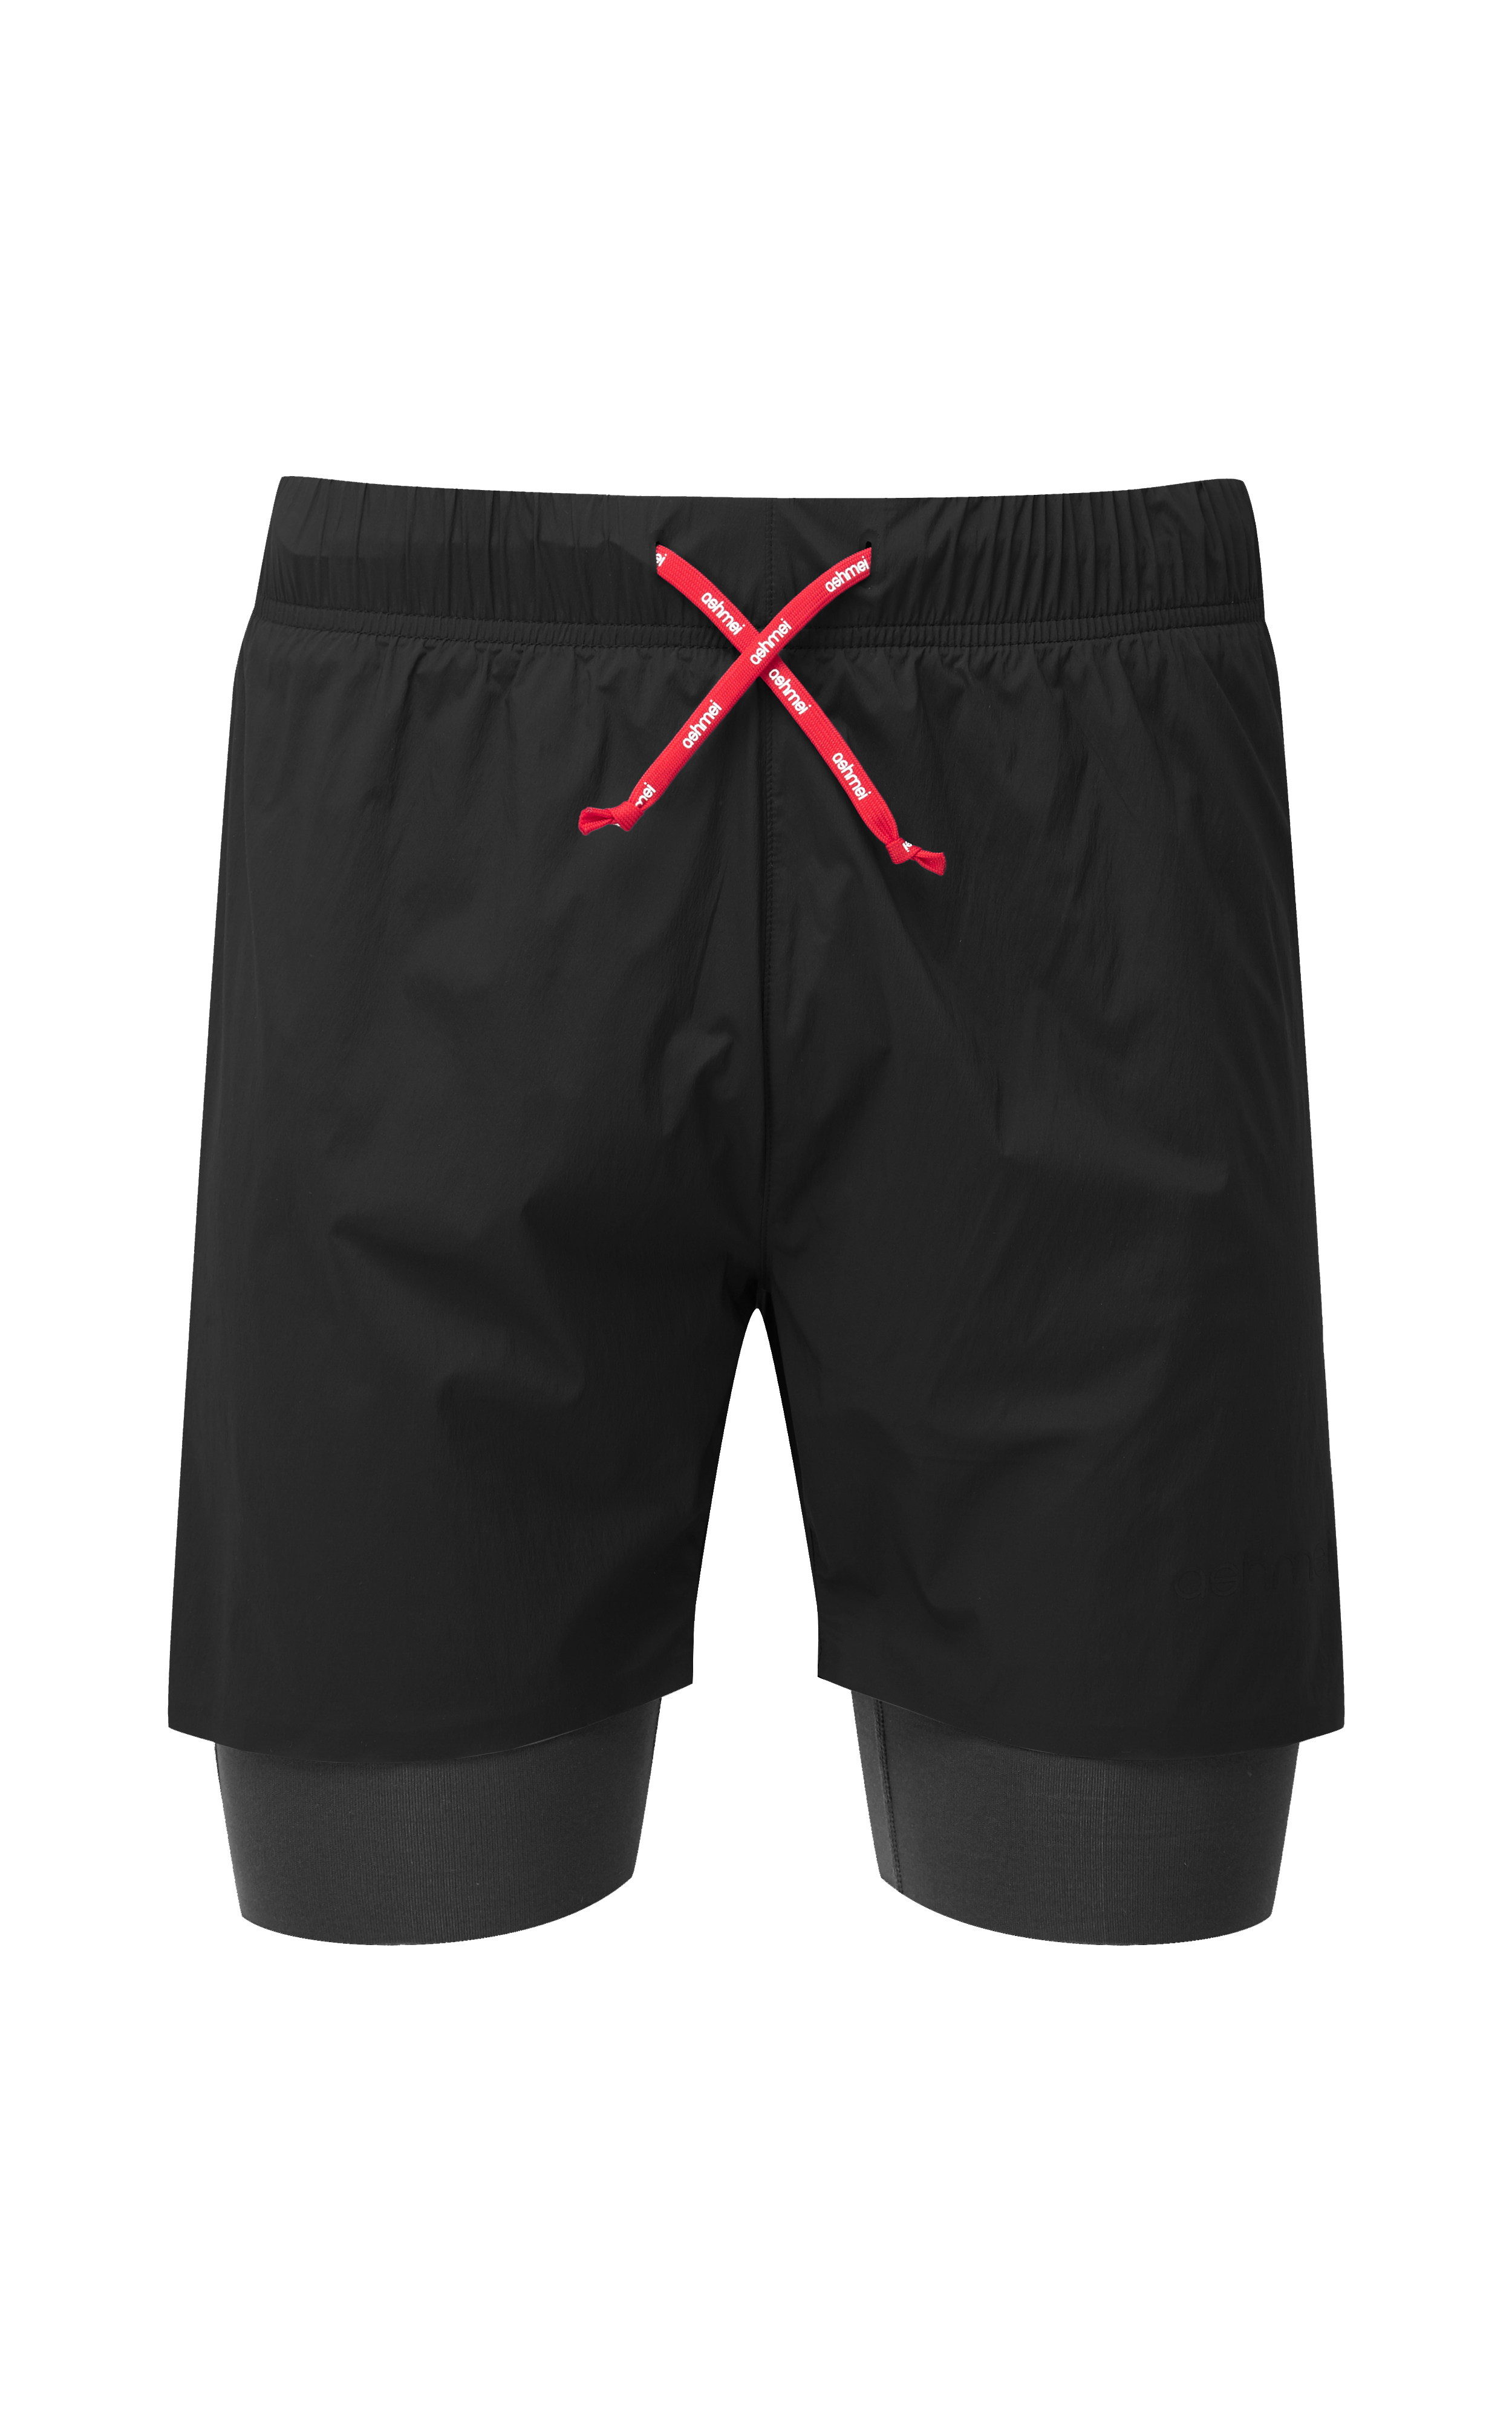 ashmei | Men's 2 in 1 Shorts